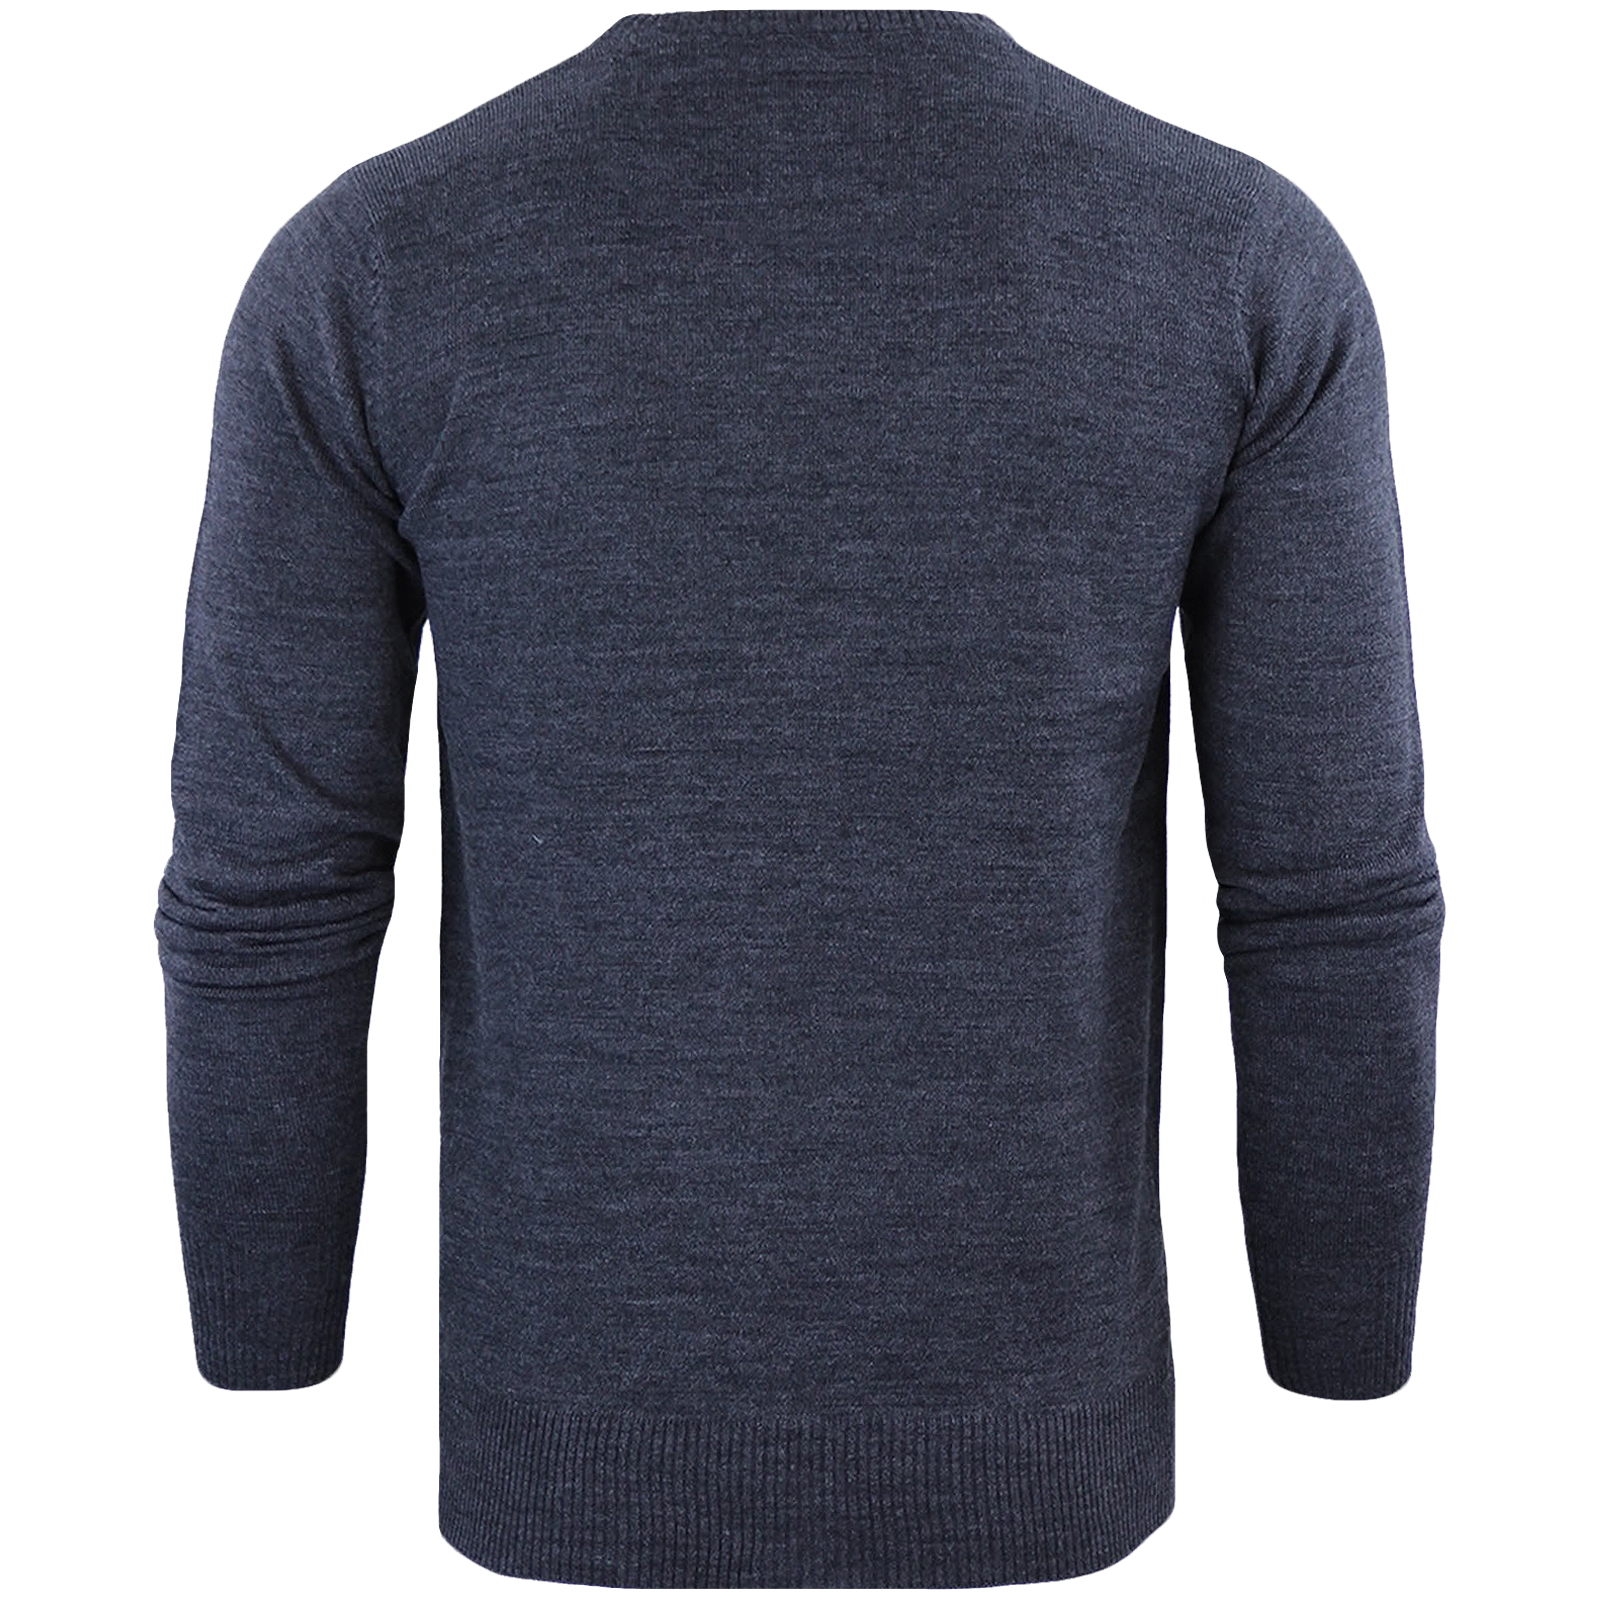 Brave-Soul-Mens-Parse-Knitted-Long-Sleeve-Crew-Neck-Jumper-Sweater-Pullover-Top thumbnail 7